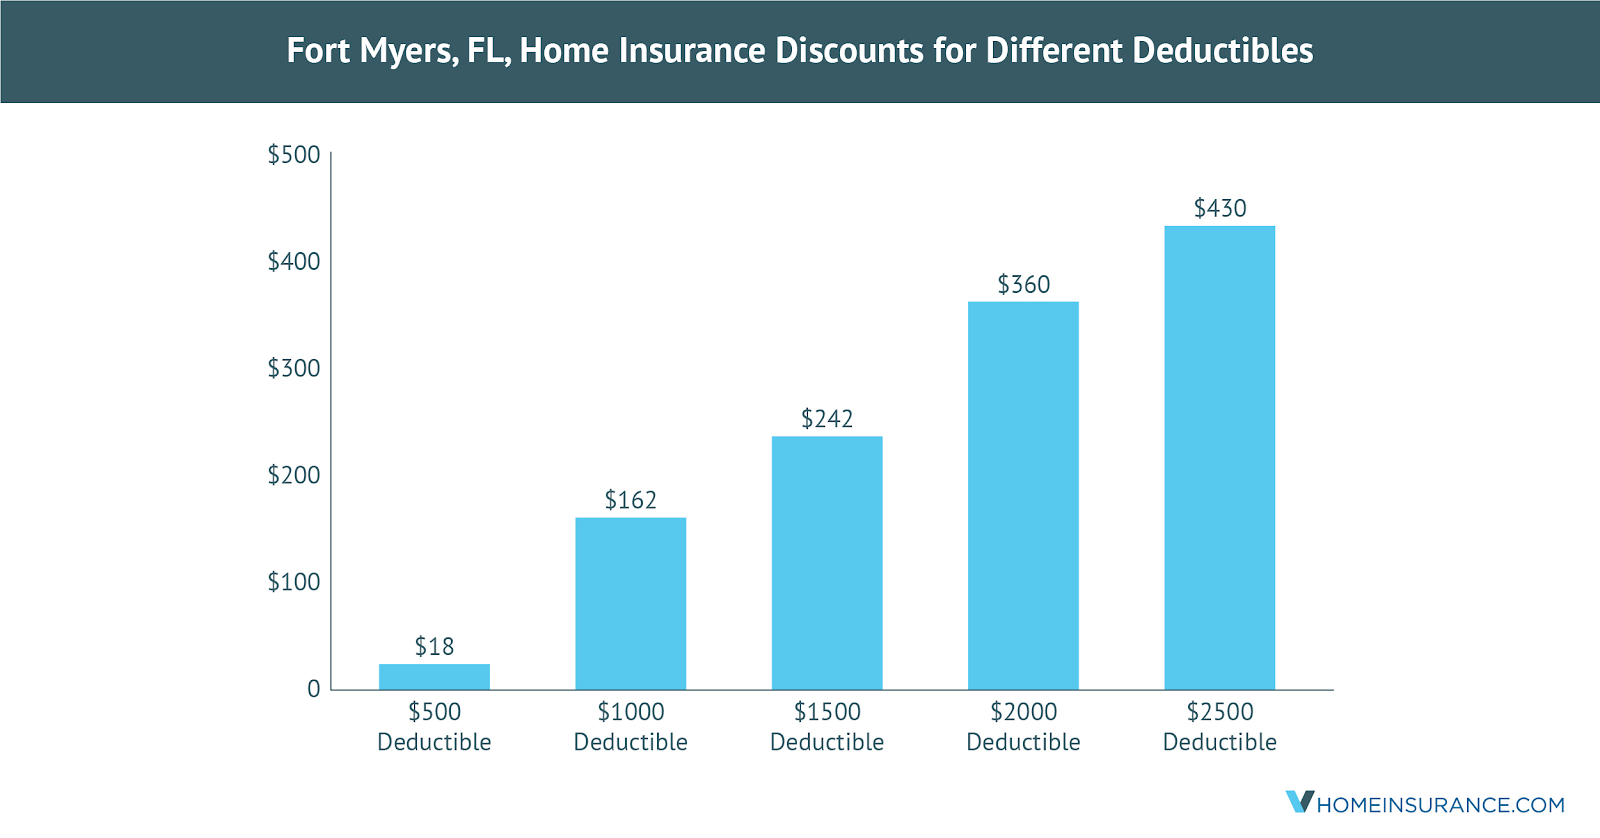 Save_on_Fort_Myers_FL_Home_Insurance_Using_These_Discounts